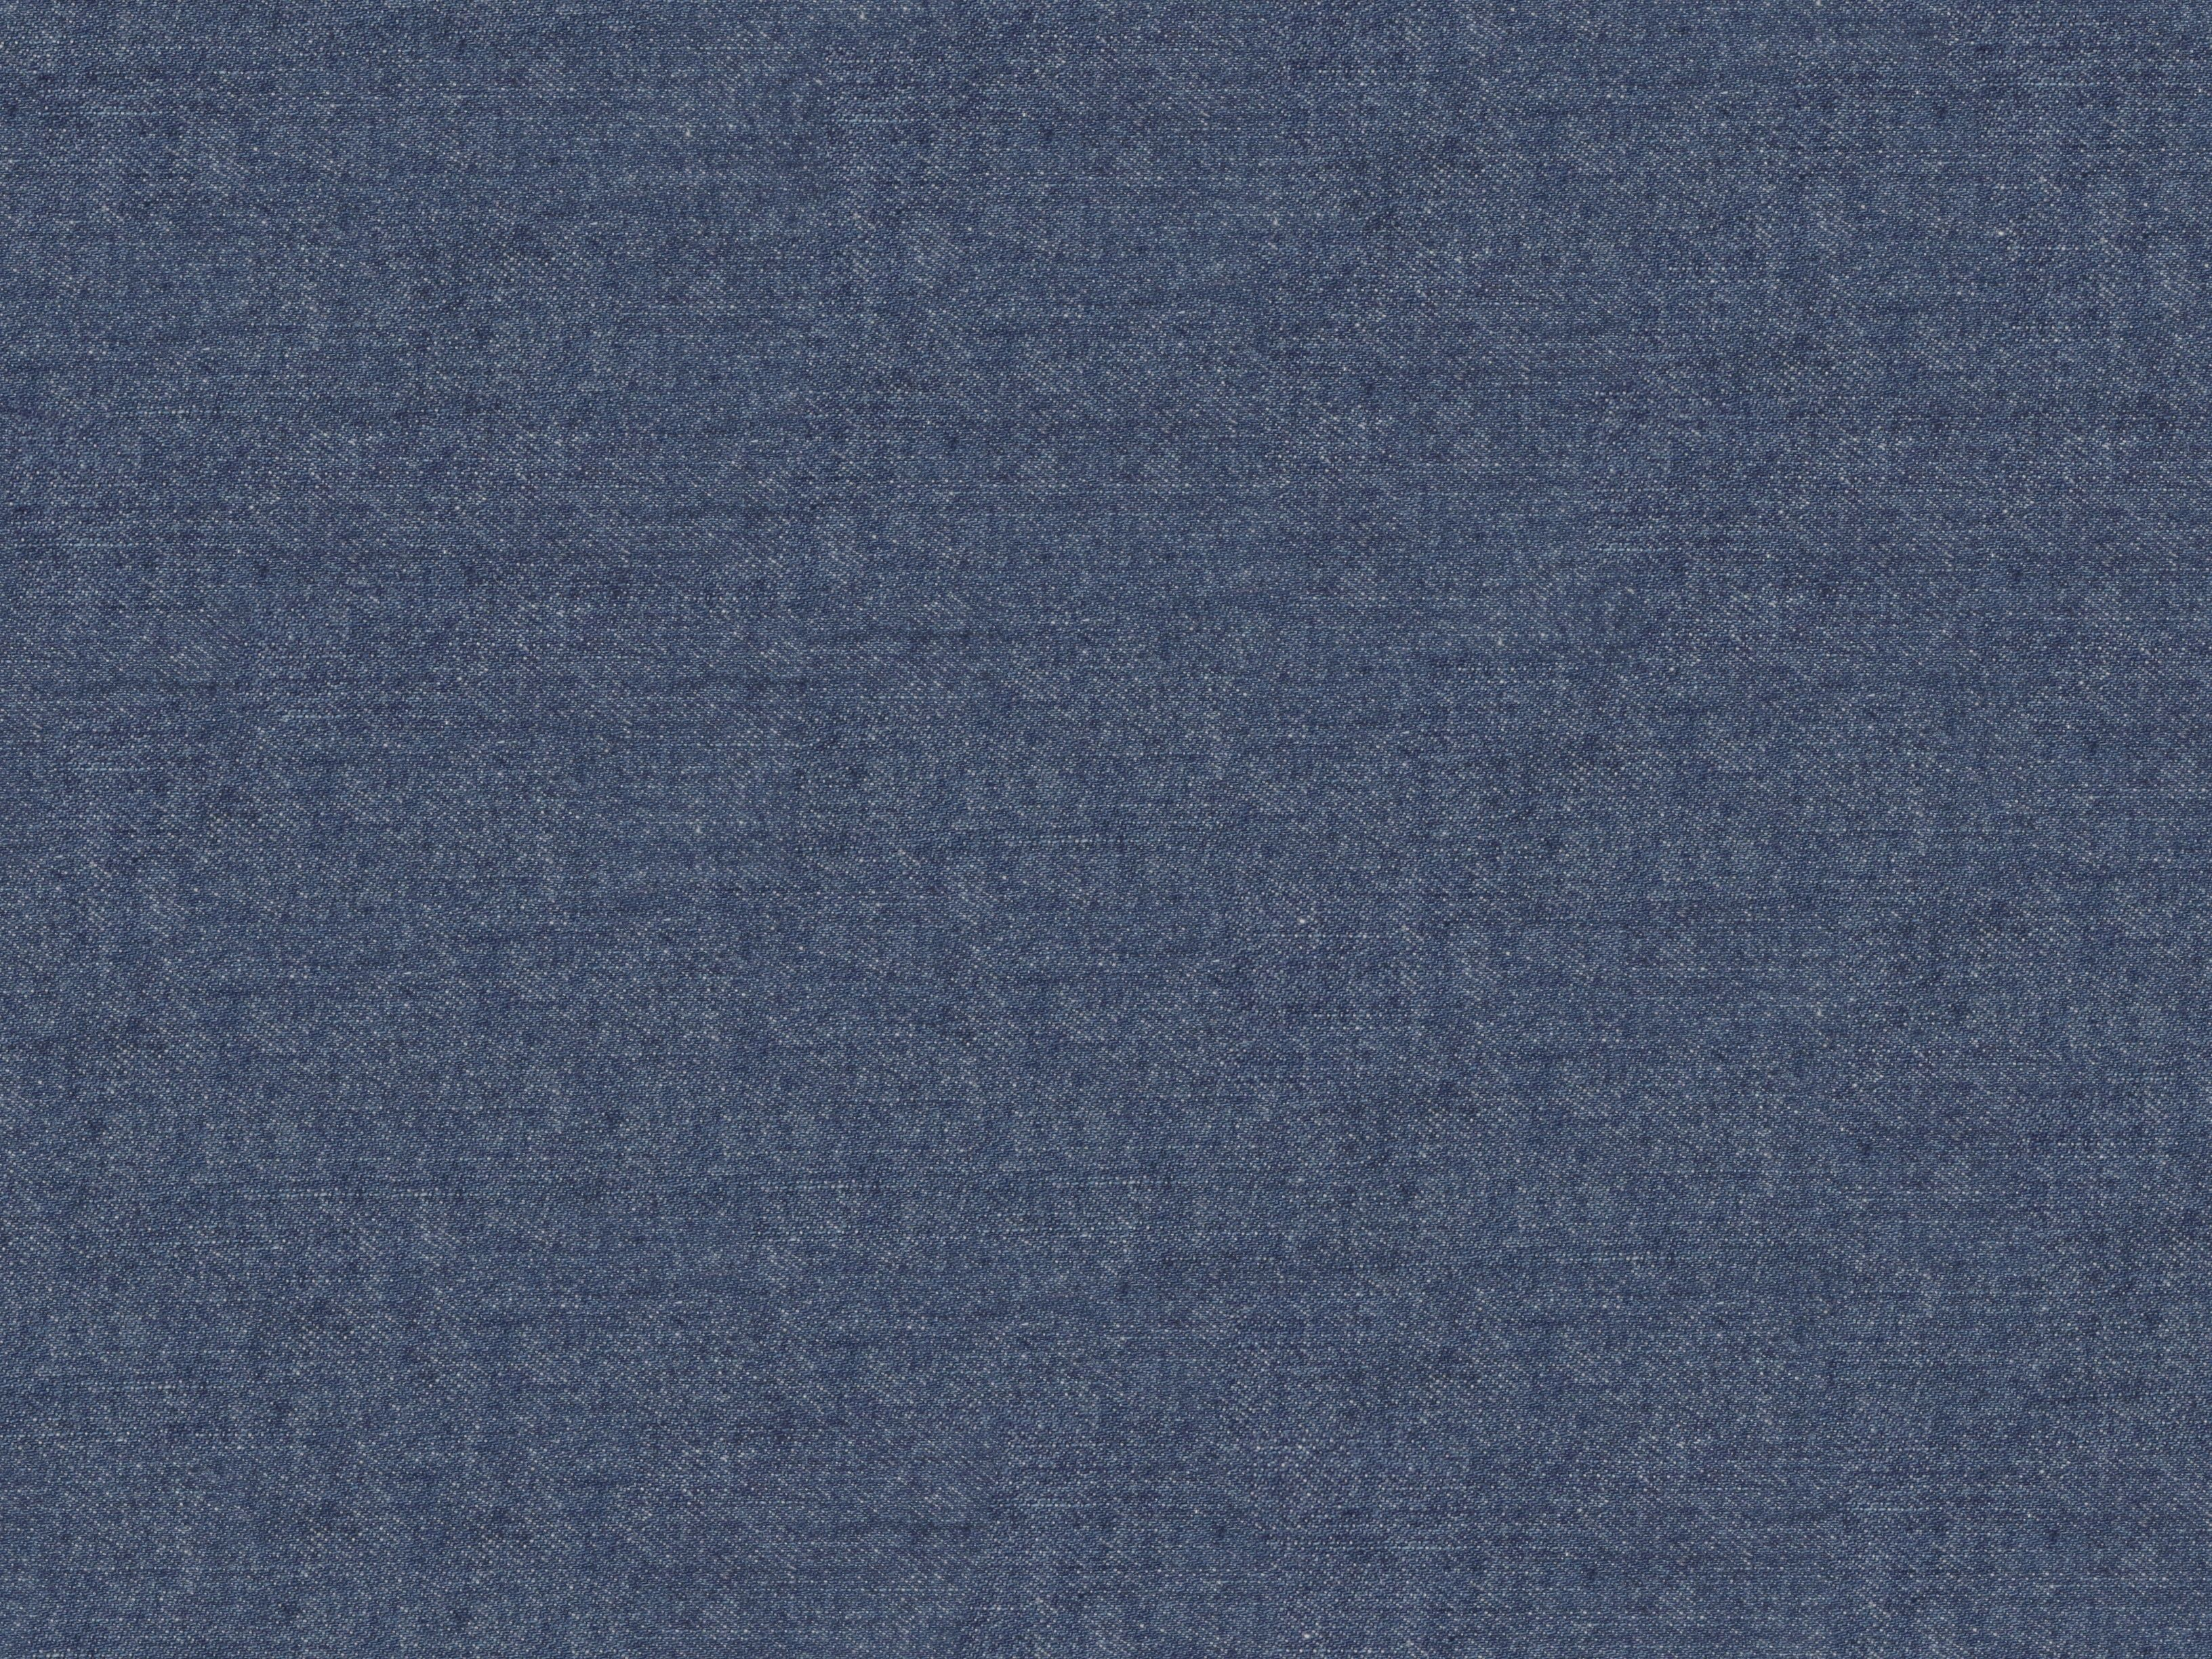 Jeans textures 3D model   CGTrader